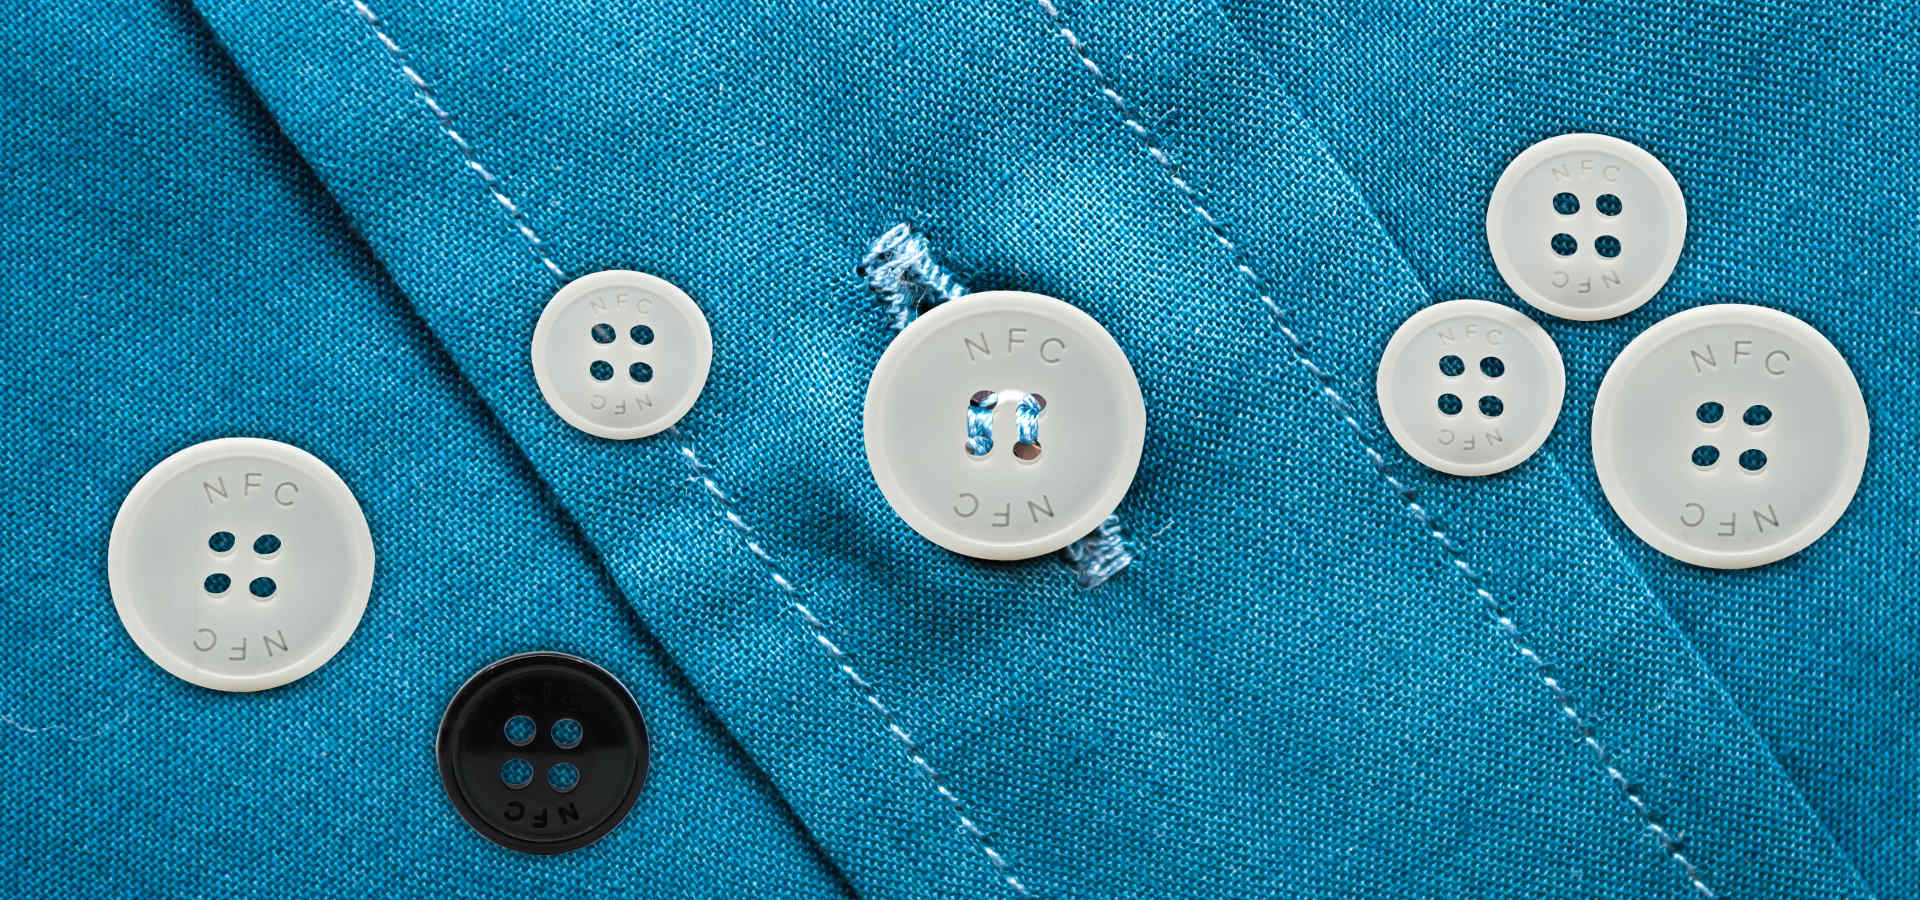 NFC buttons sewn on blue shirt